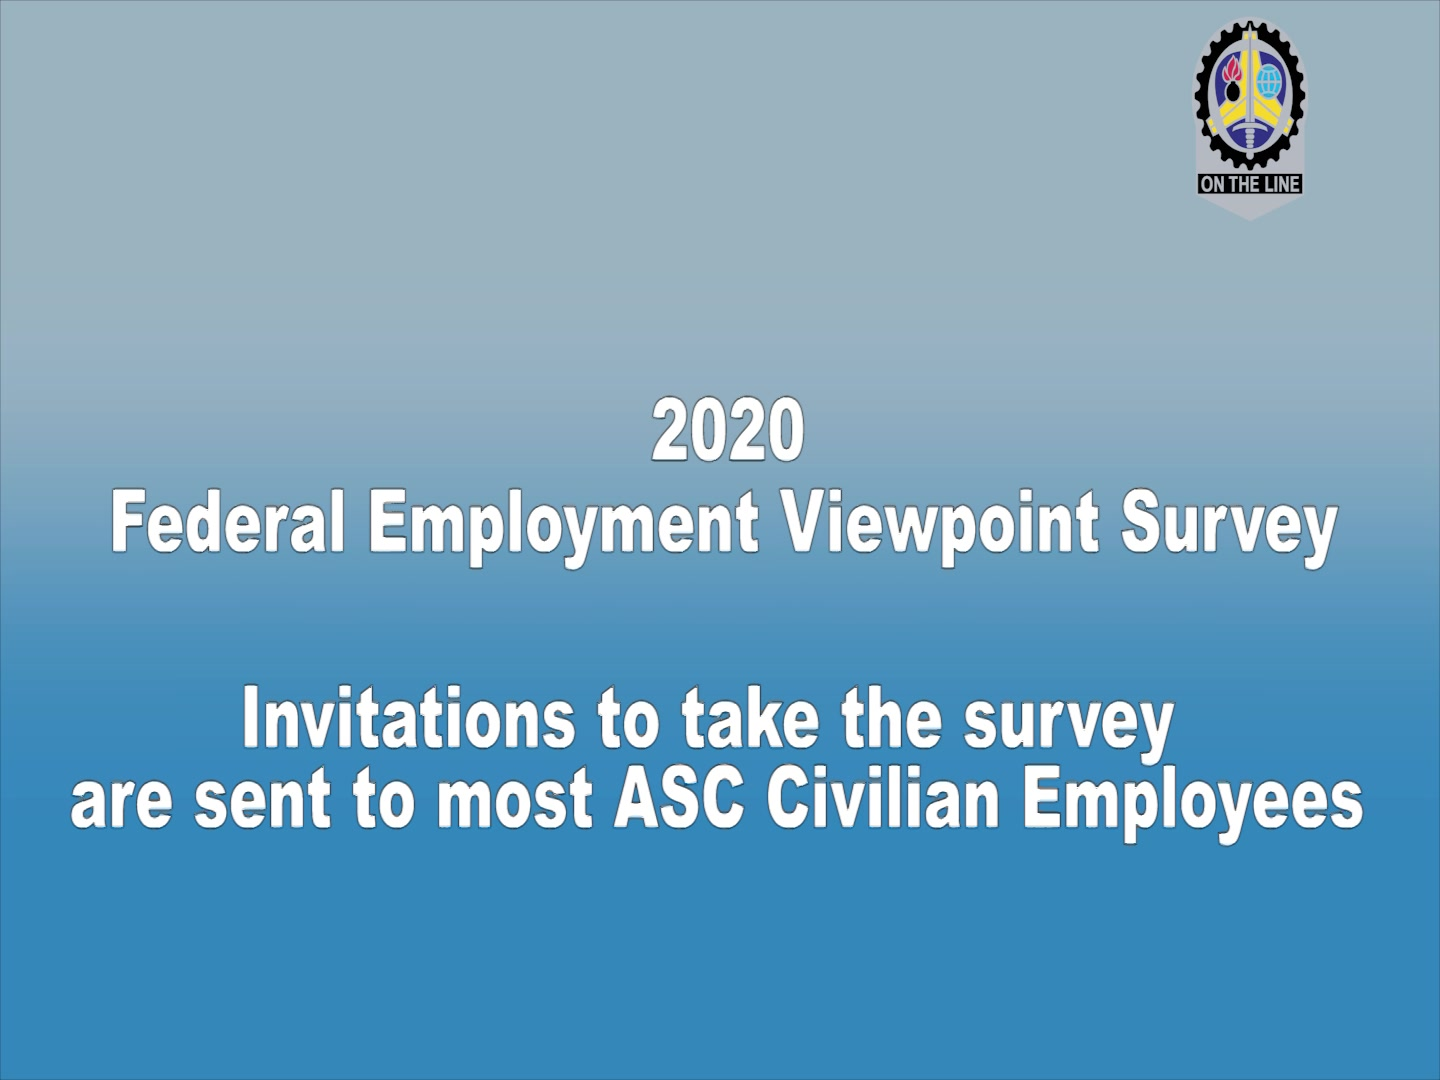 With three weeks left, the push is for federal civilians to take an online survey to gauge the workforce's views on various topics to help leadership develop better policy changes.